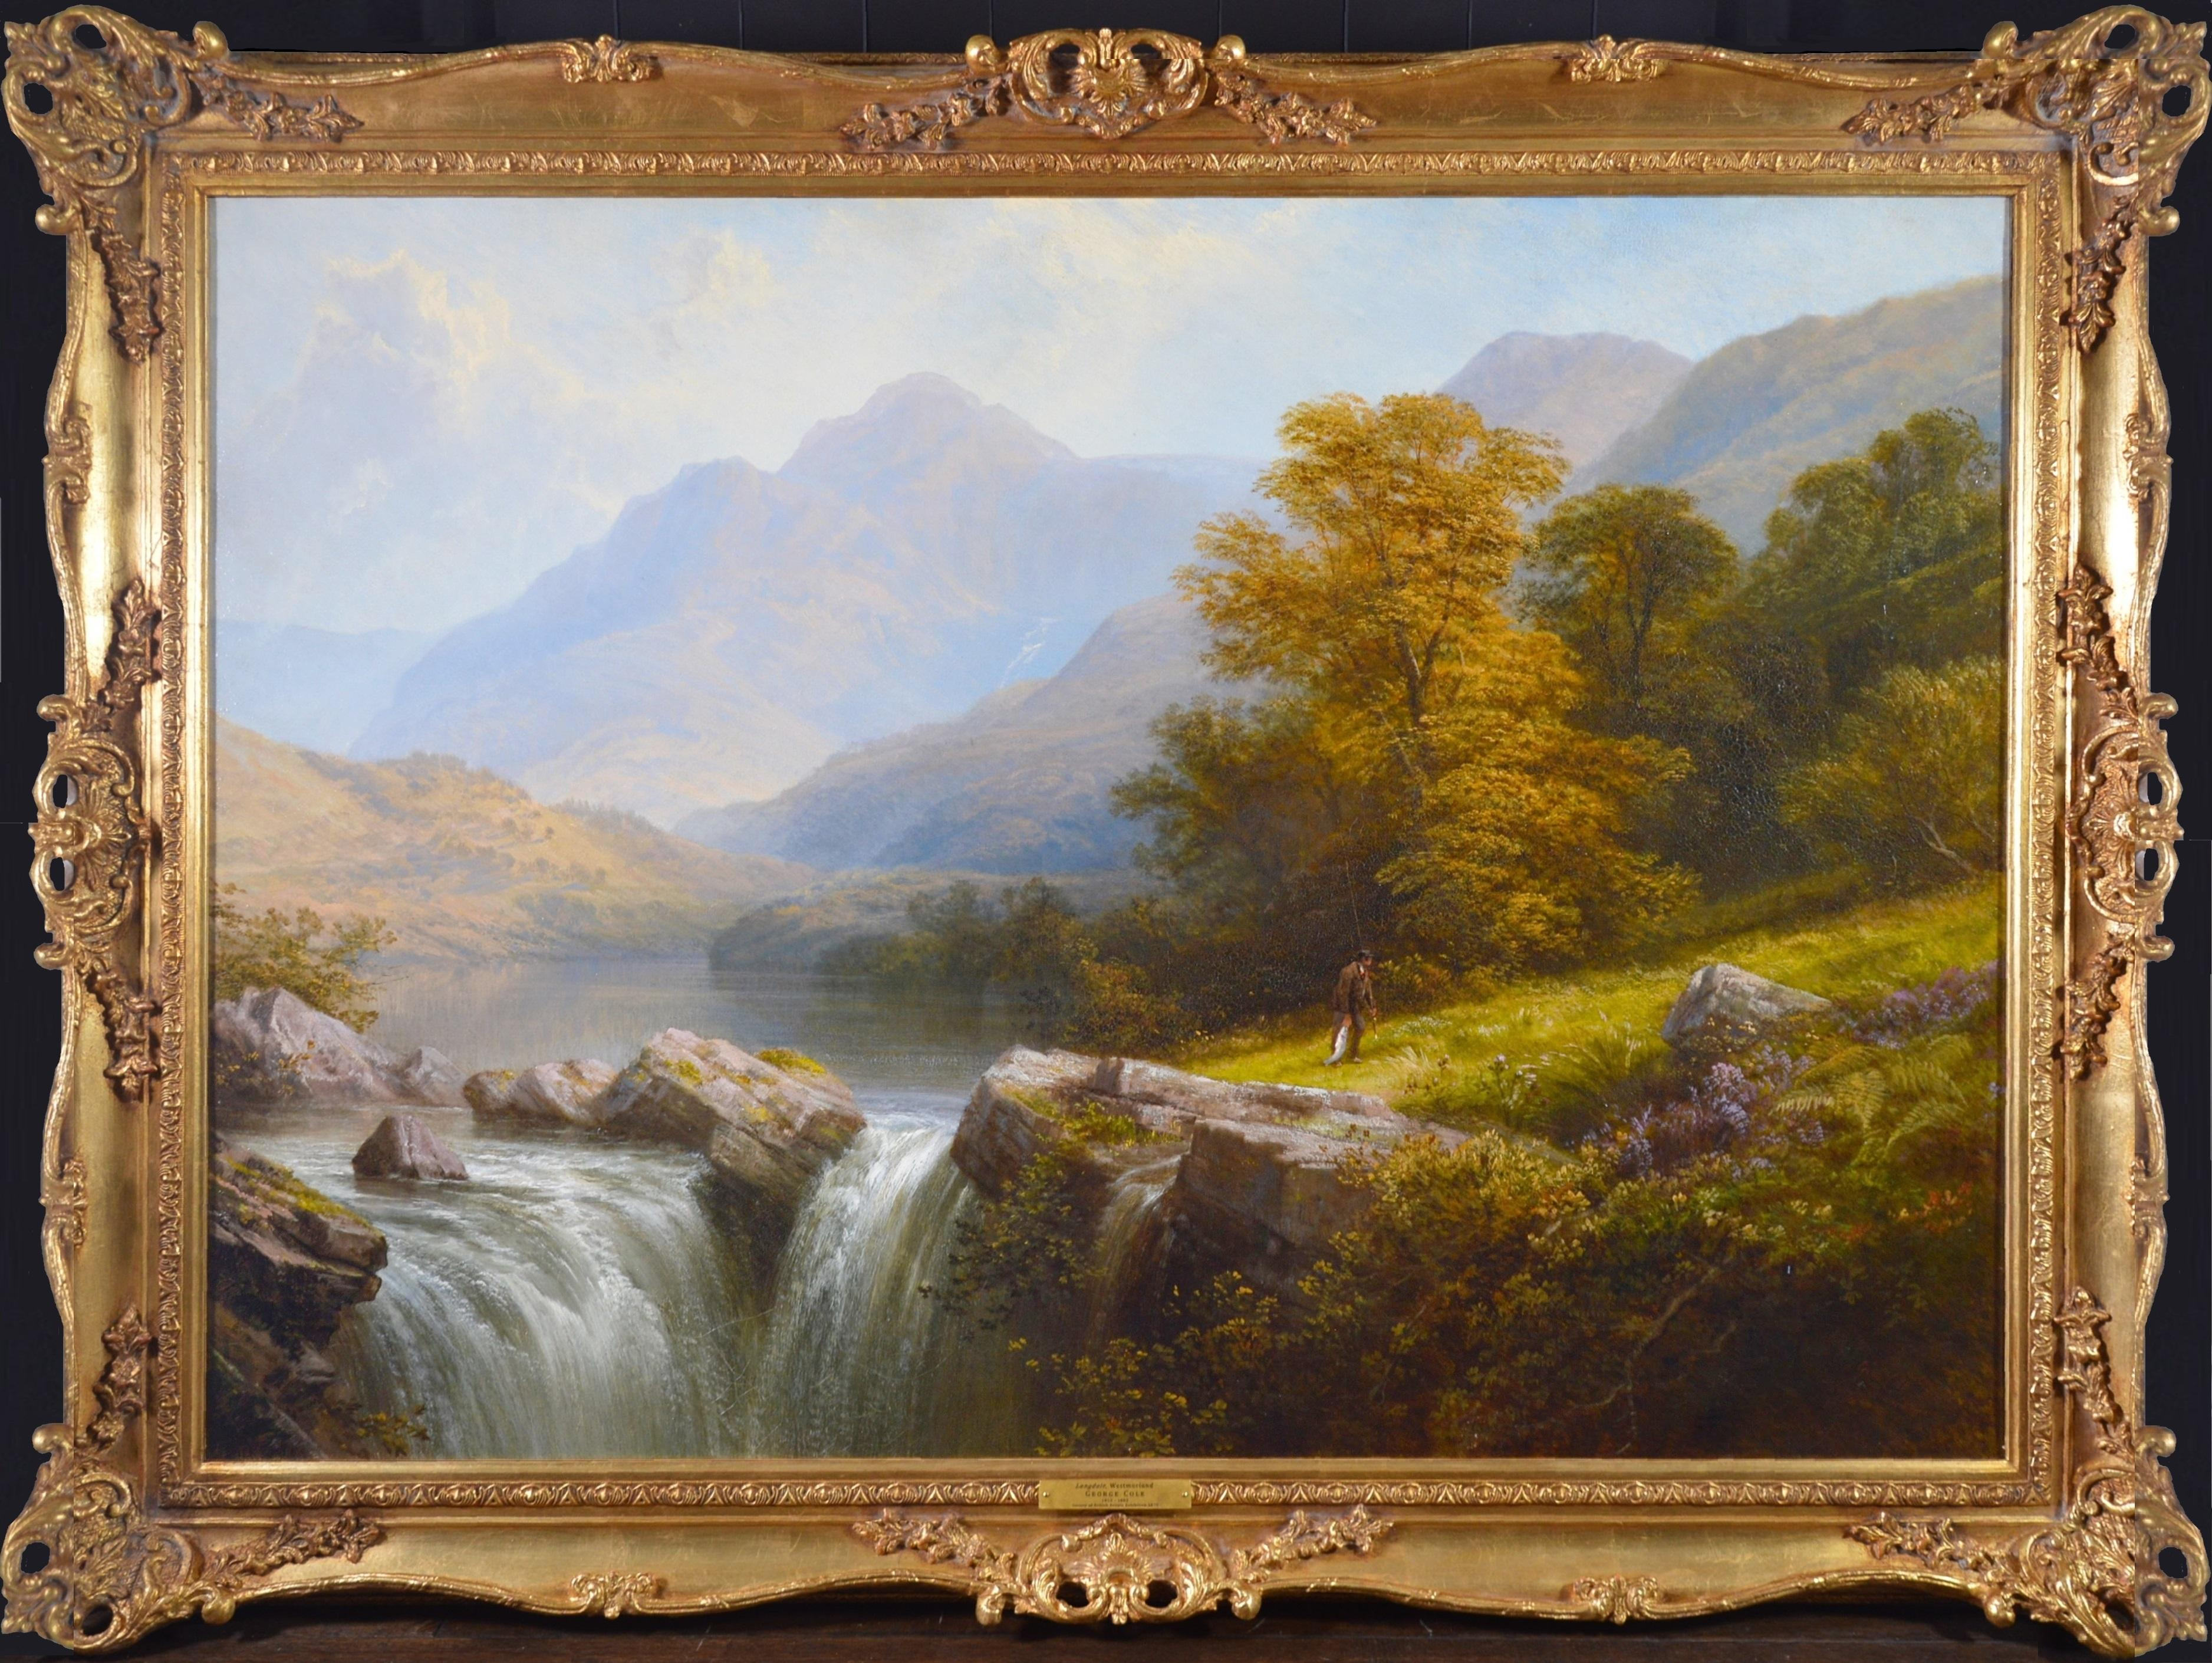 Langdale, Westmorland - Huge 19th Century Exhibition Landscape Oil Painting 1879